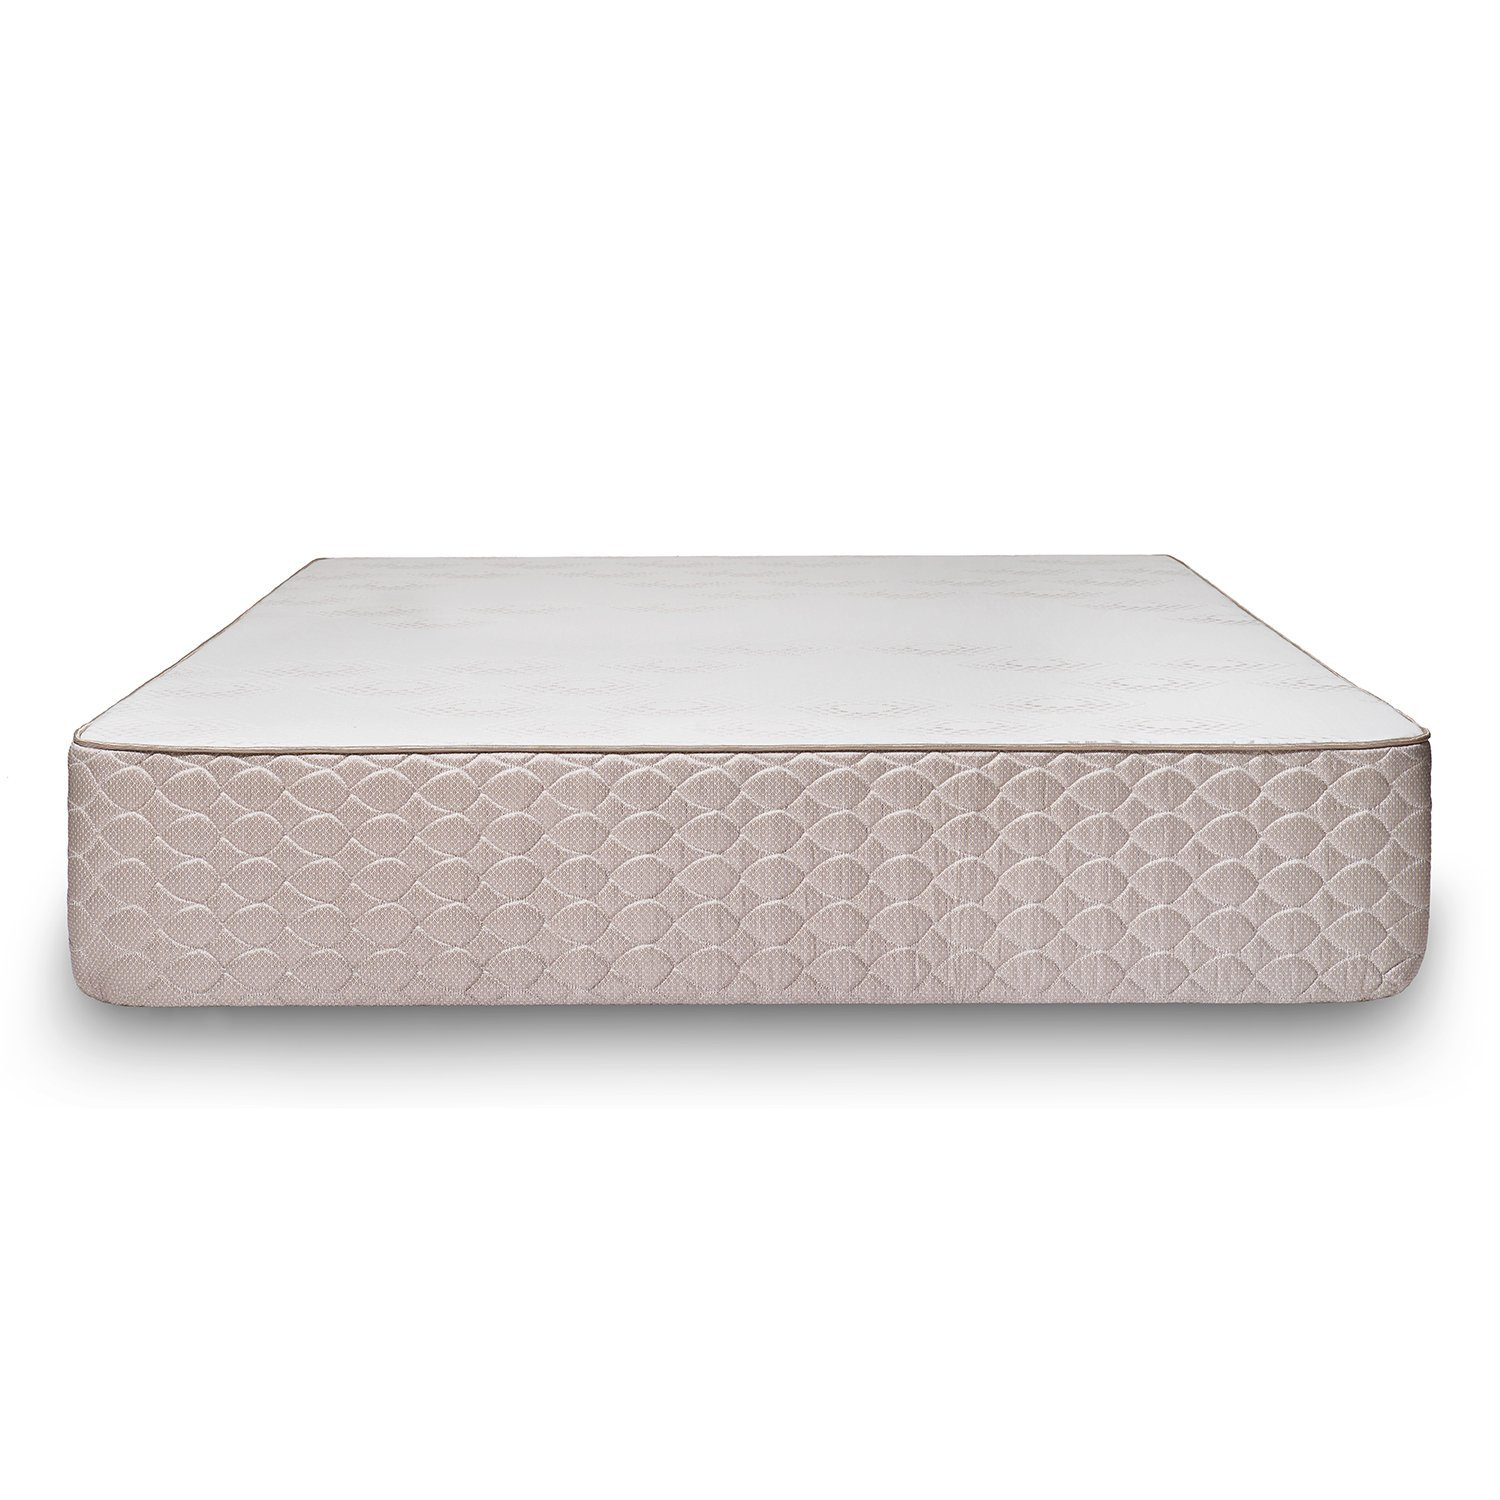 brentwood home sbed latex and gel memory foam mattress